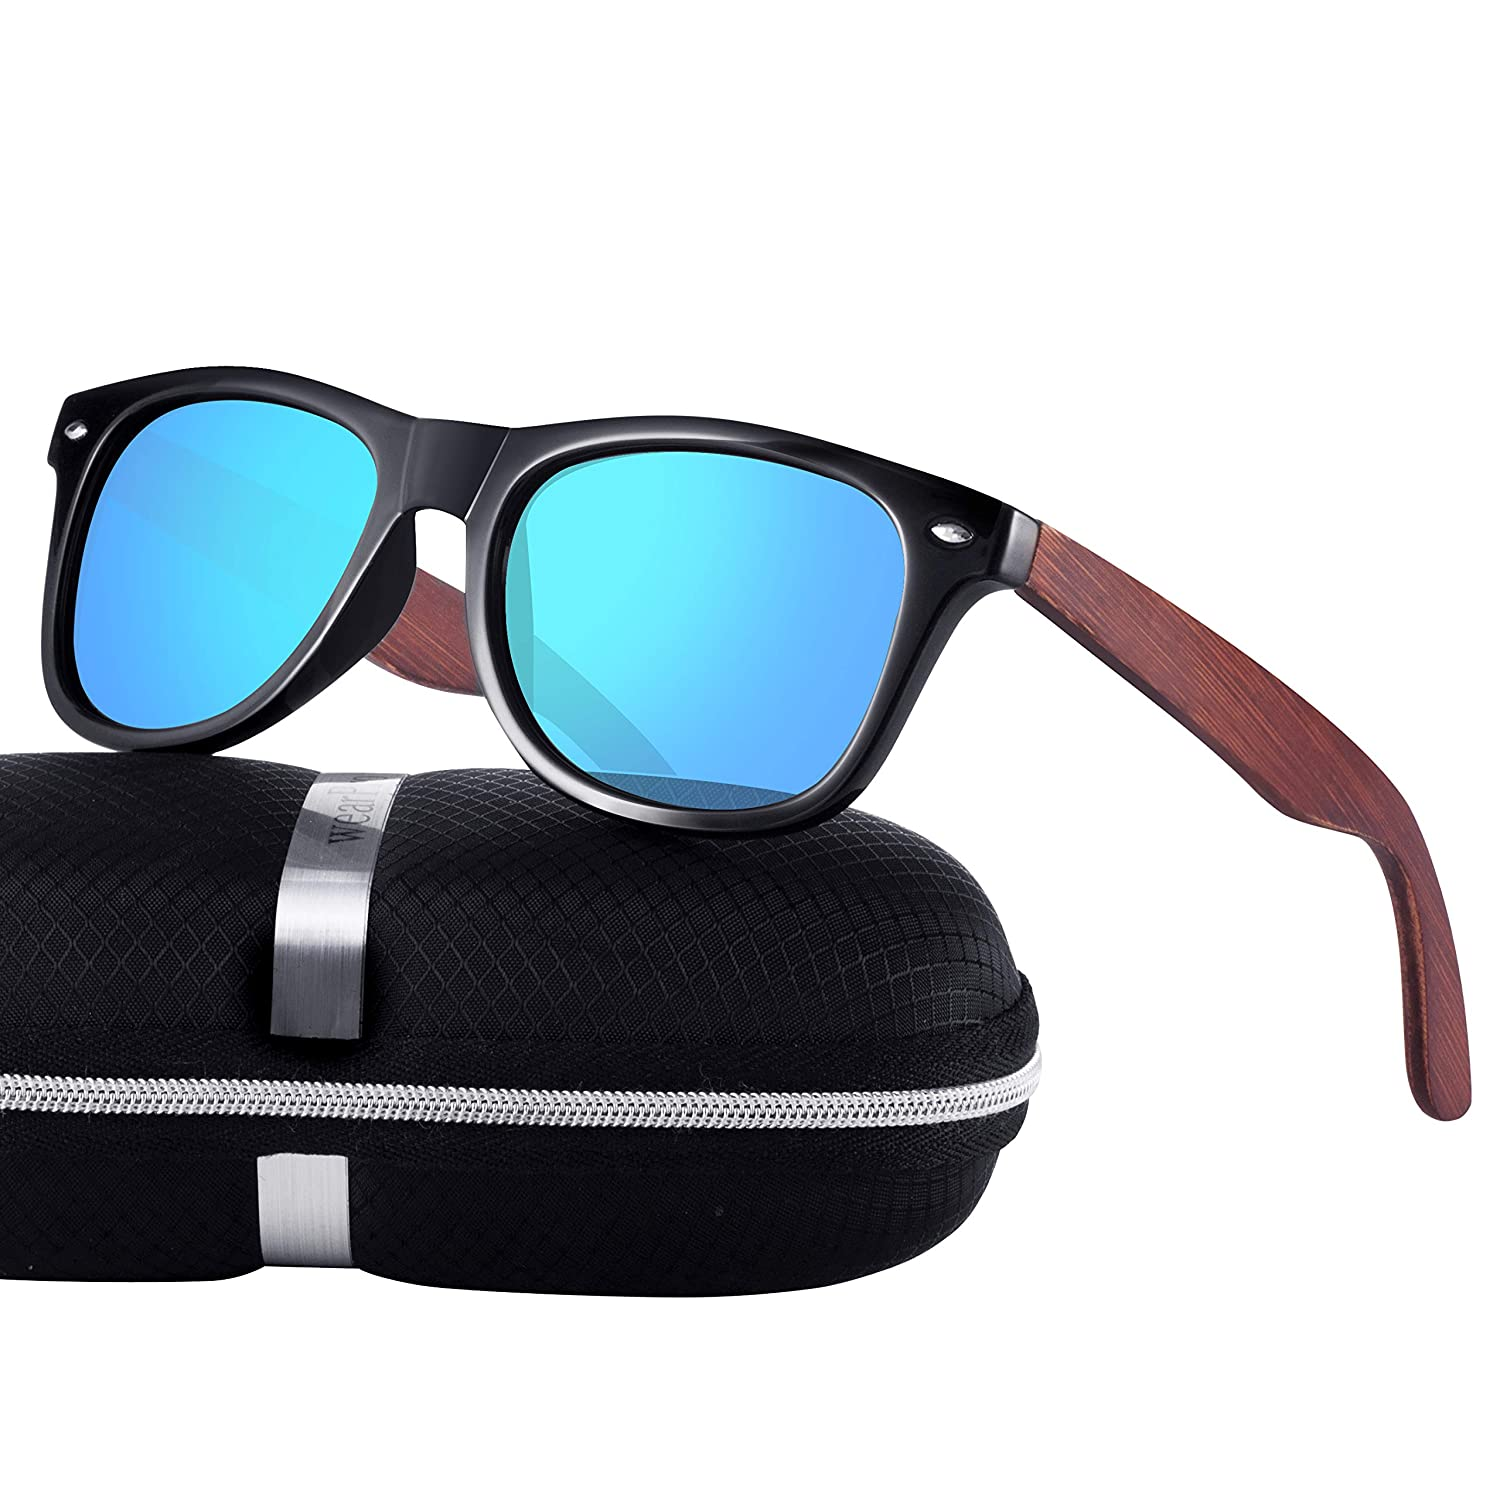 6aa5bfb665 Polarized Wood Sunglasses for Men and Women -wearPro Wood Sunglasses UV400  for Traveling Driving with